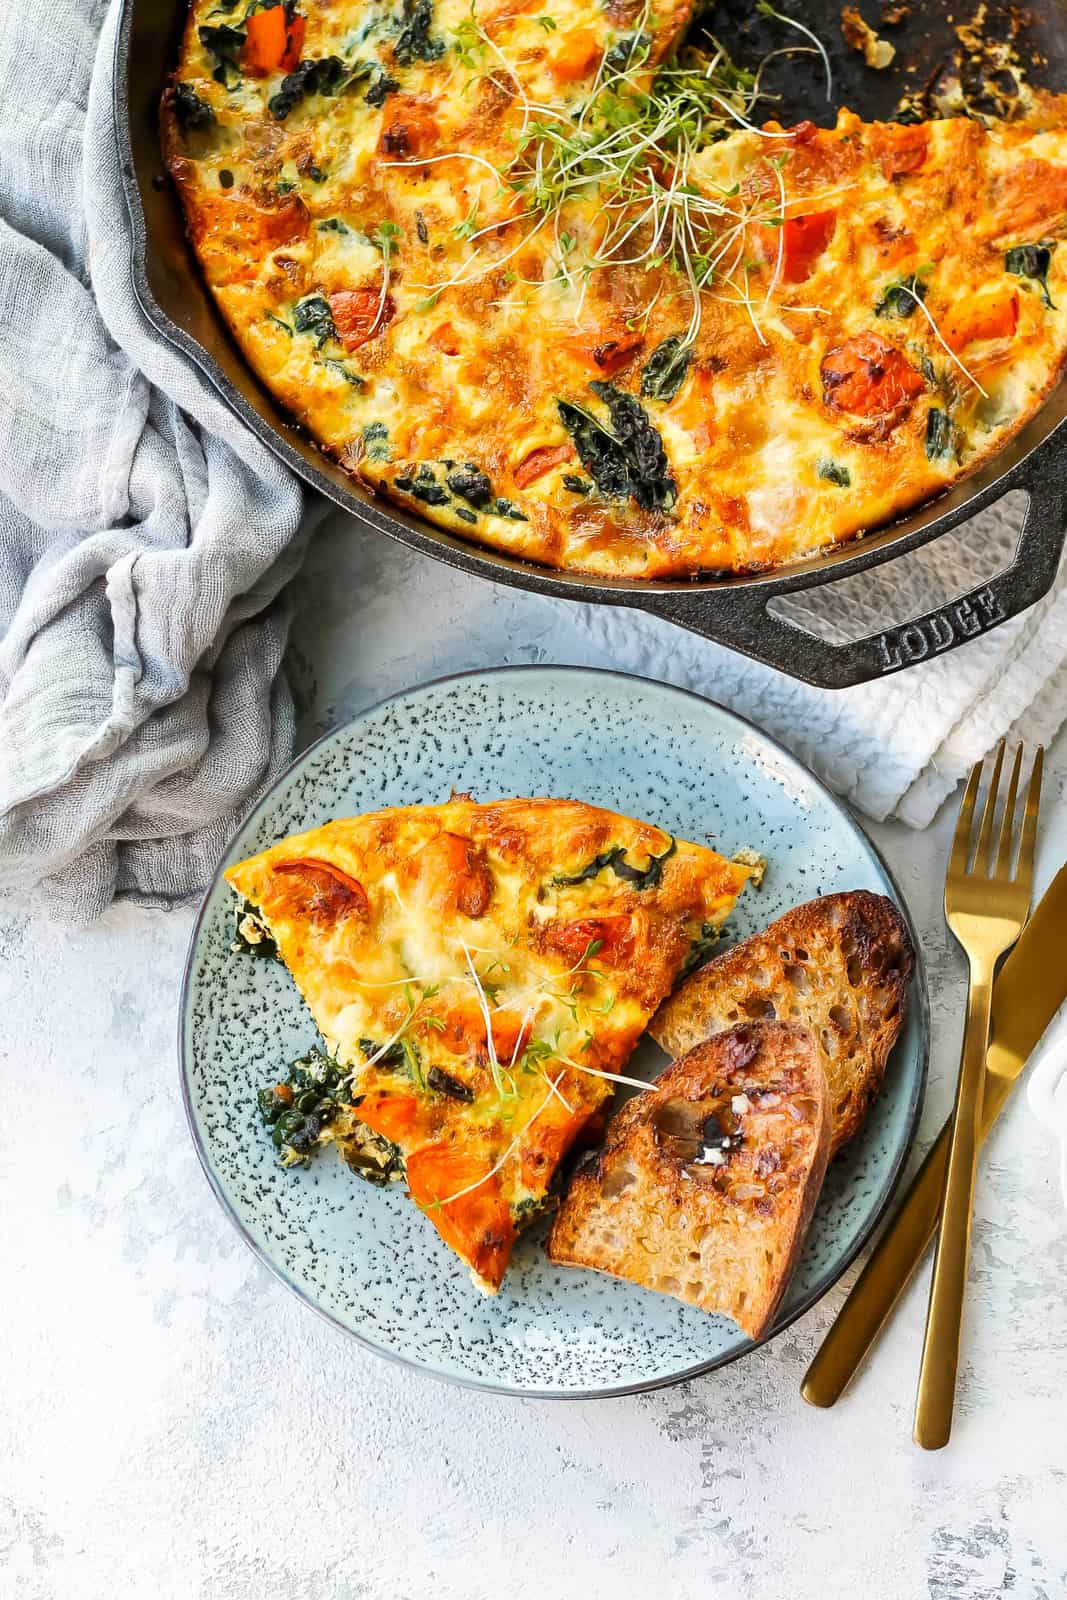 pumpkin frittata in a cast iron frying pan with a blue plate of frittata to the side